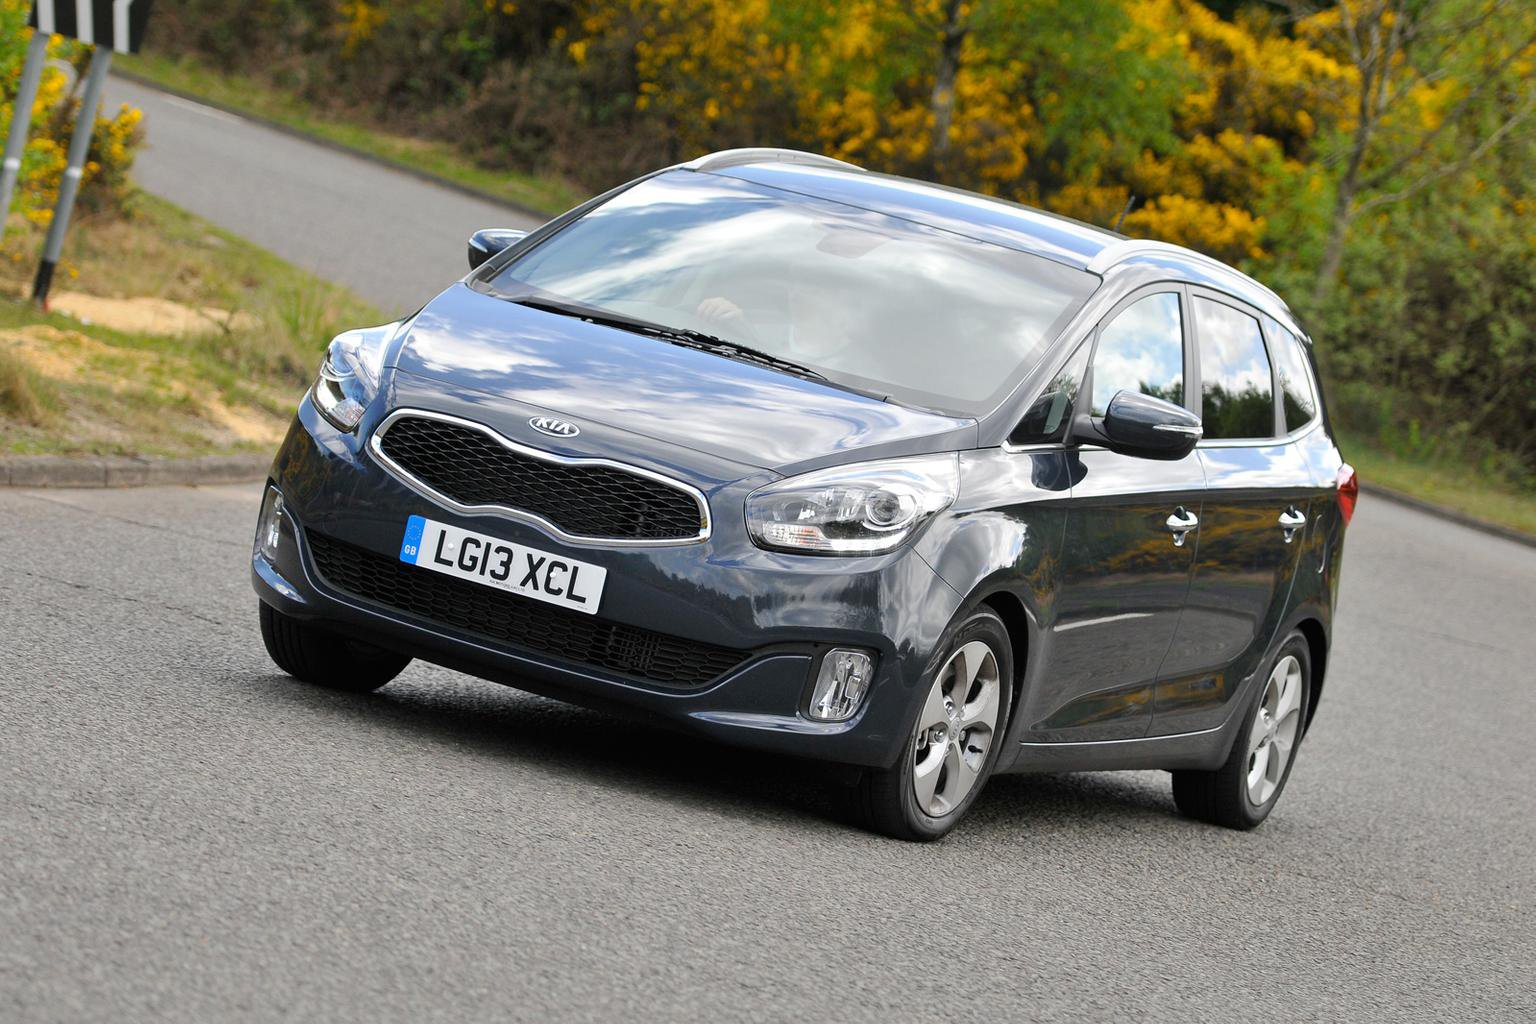 Five-star Euro NCAP crash test results for Kia Carens and Qoros 3